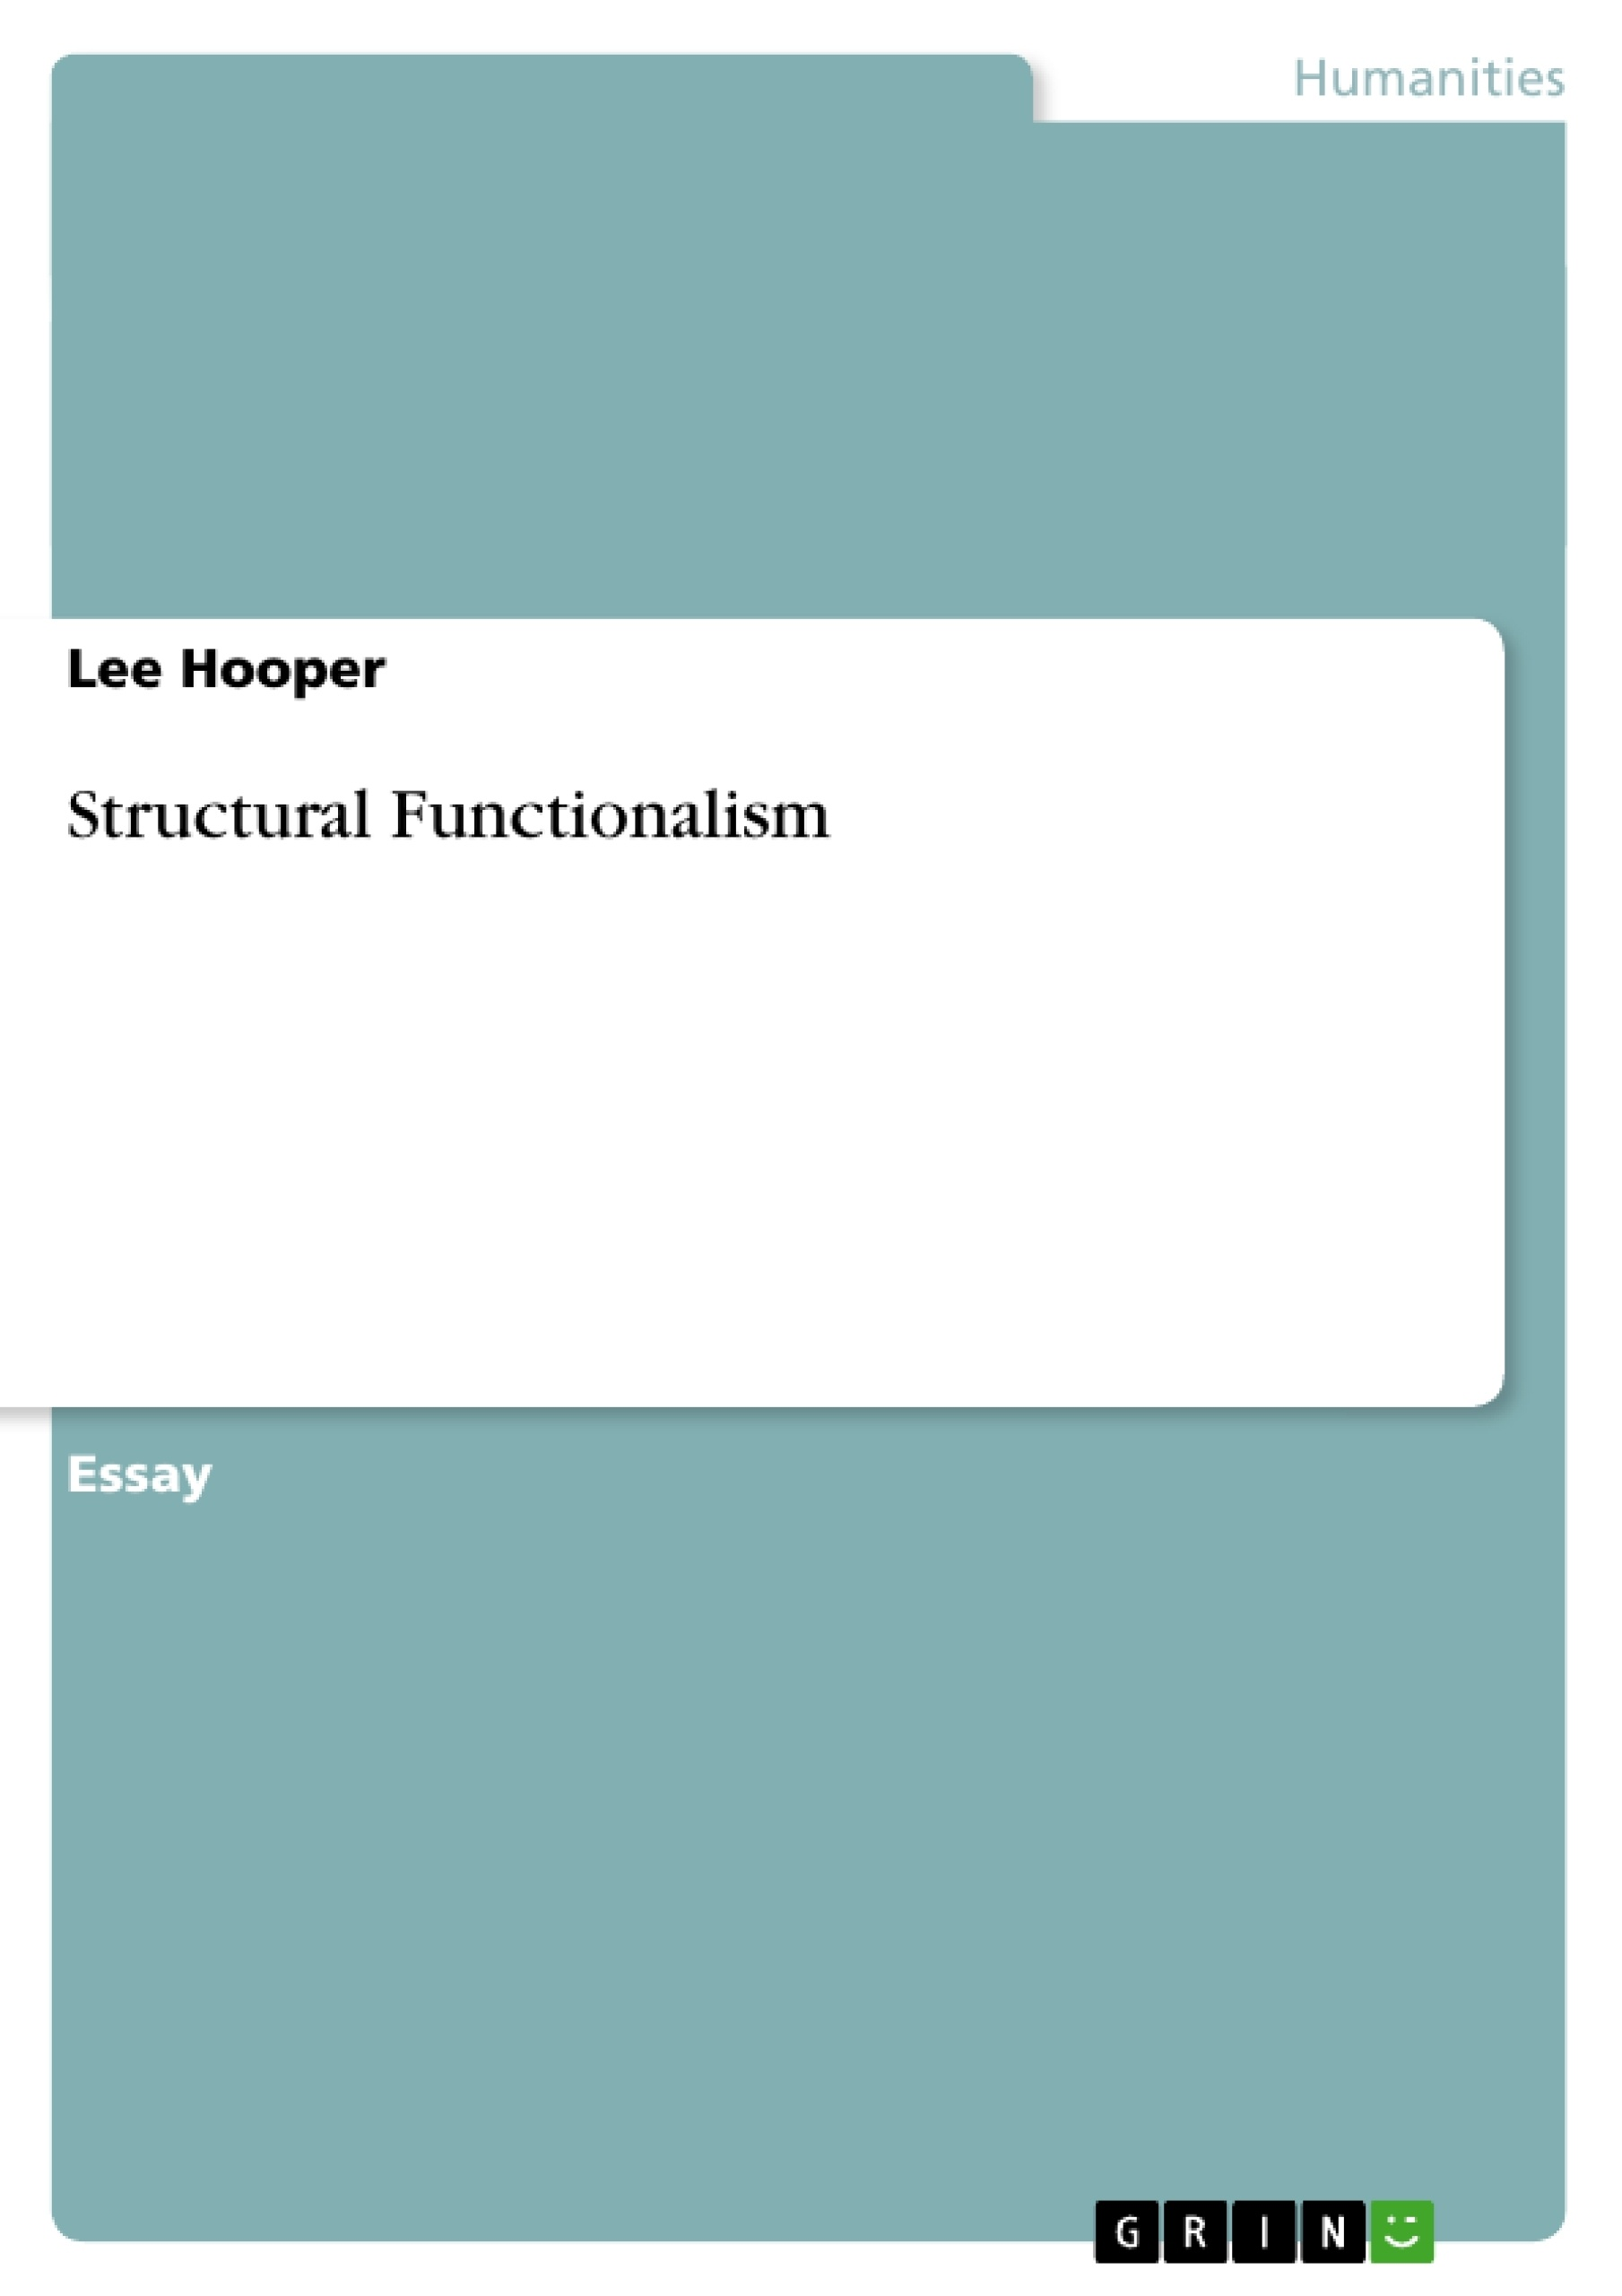 structualism and functionlism paper Research paper on structural functionalism perspective how important are stability, balance among societal parts and order to society and how it operates the structural- functionalism perspective is a concept in sociology that could give answer to this question.